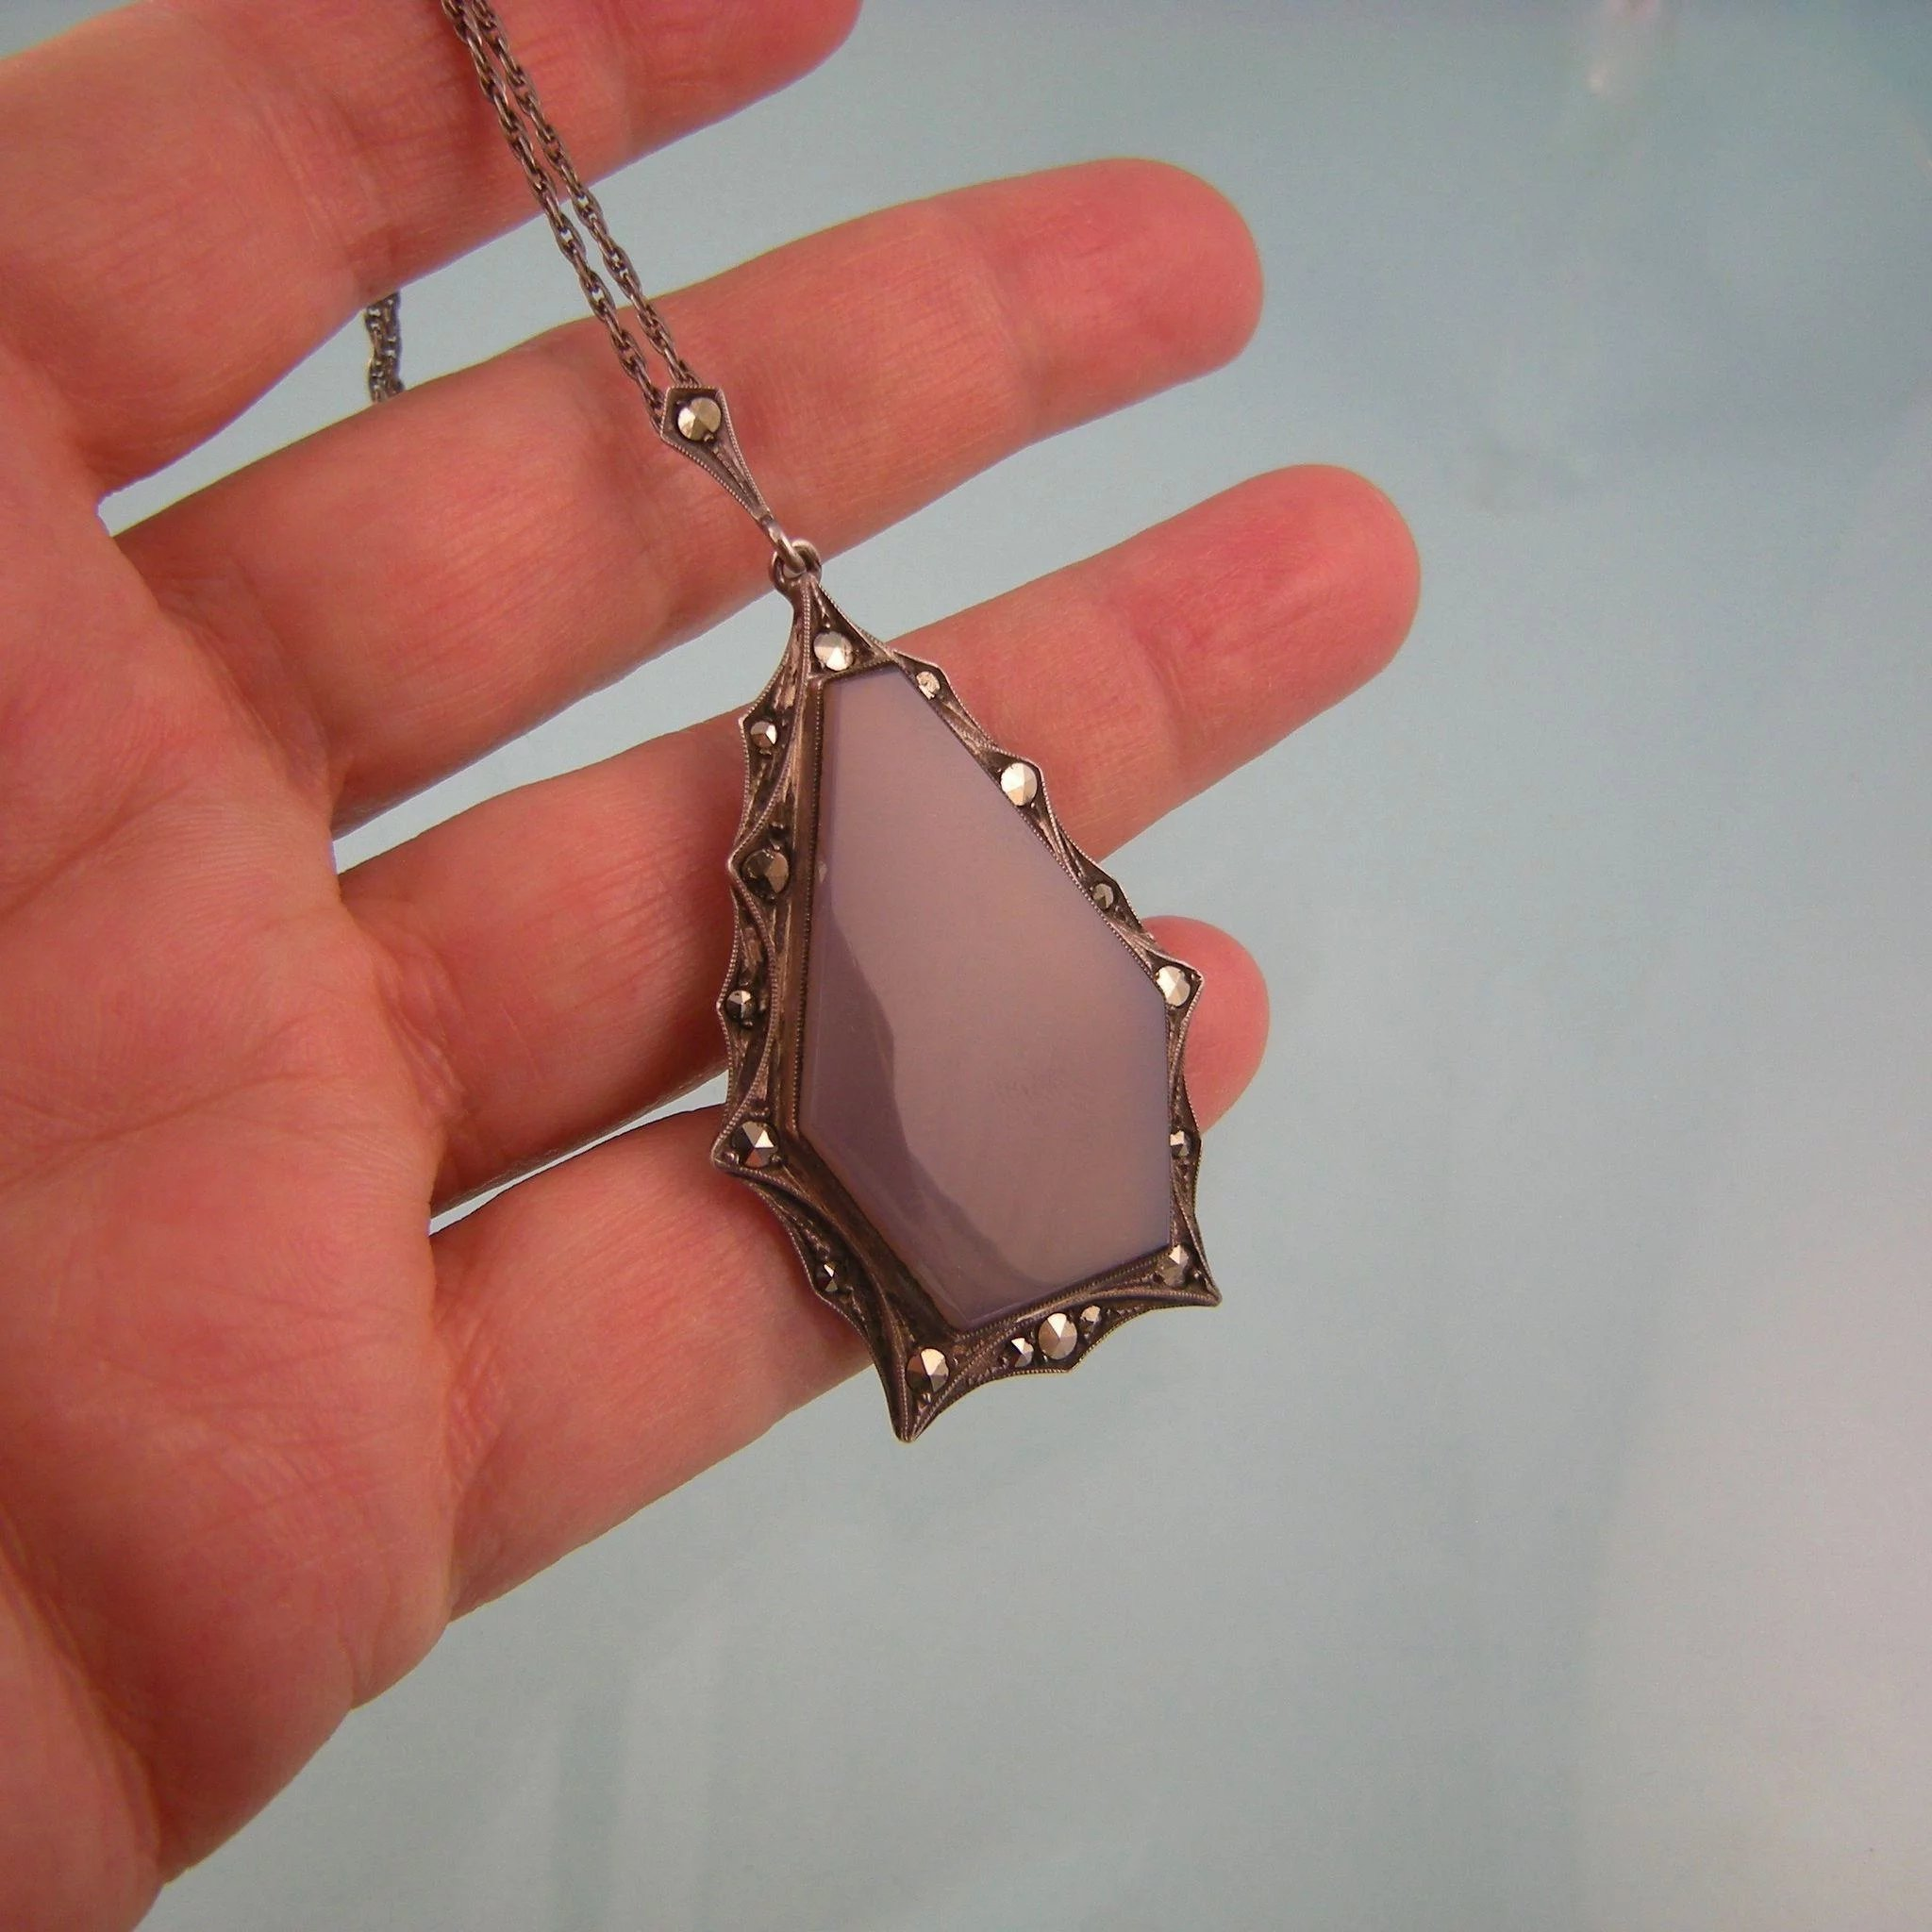 water addictedto drop venta pendant necklaces en online de joyas chalcedony